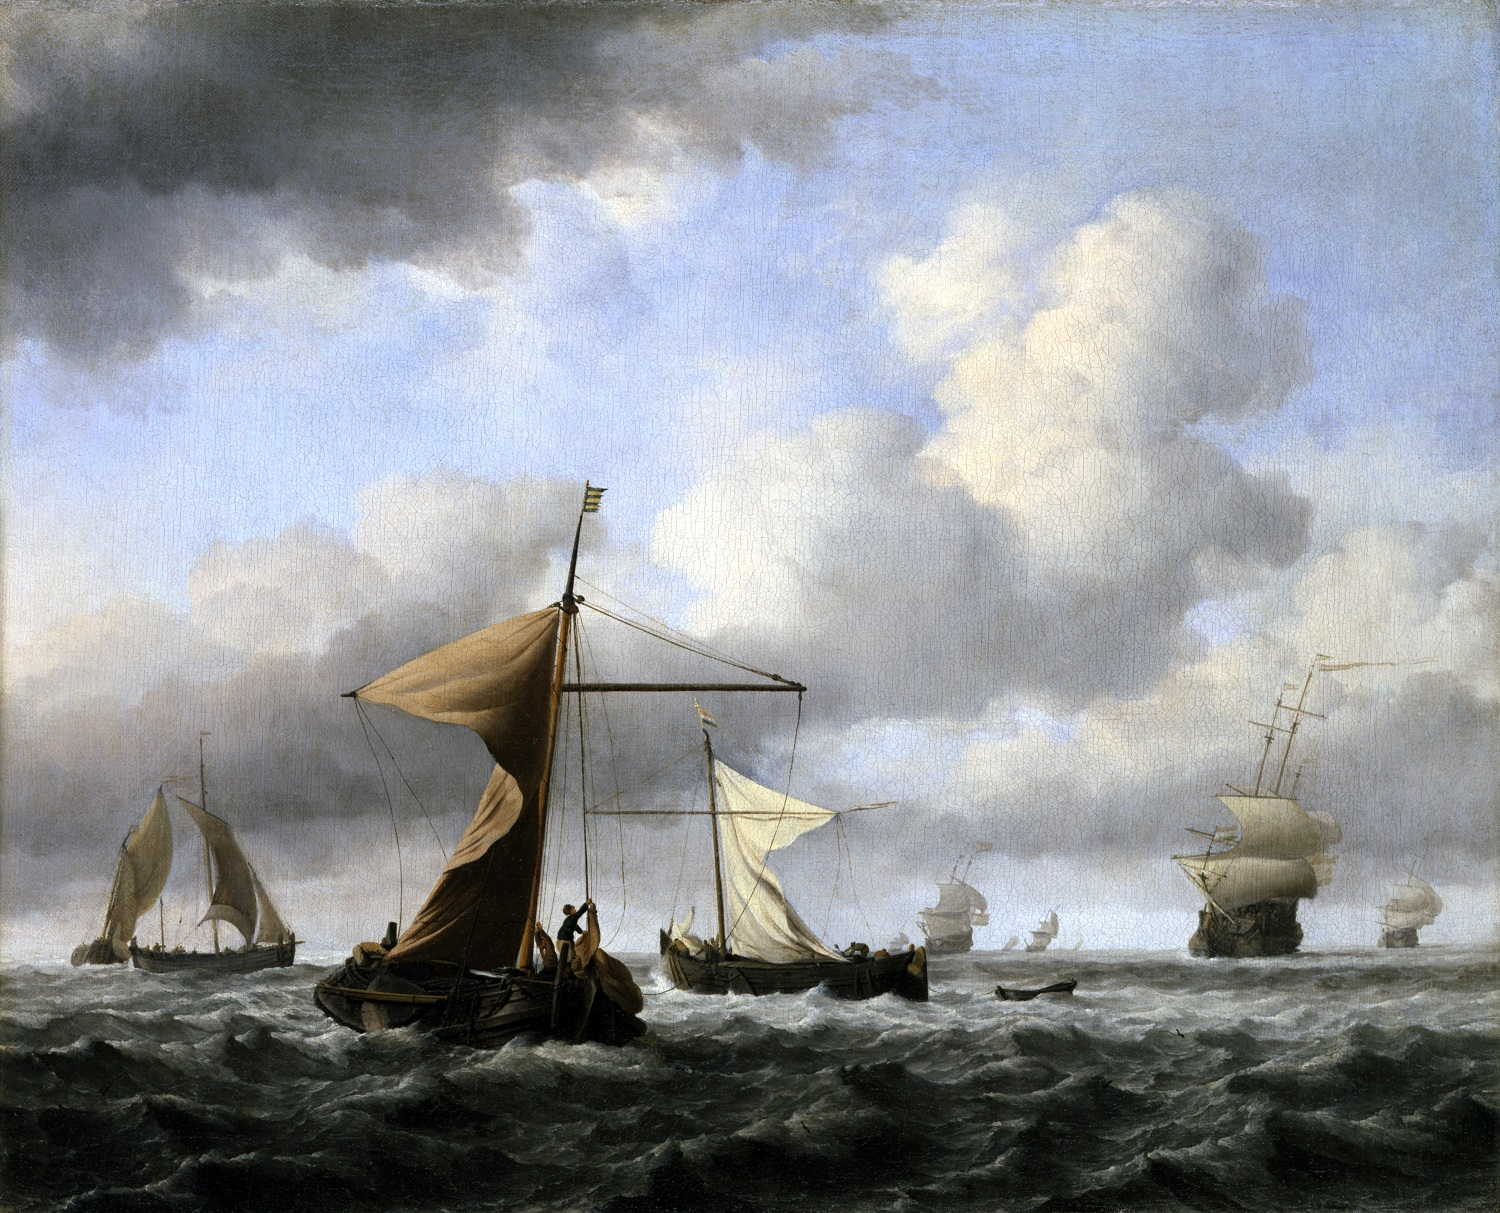 Willem van de Velde II, 'A Brisk Breeze', c.1665, Dulwich Picture Gallery